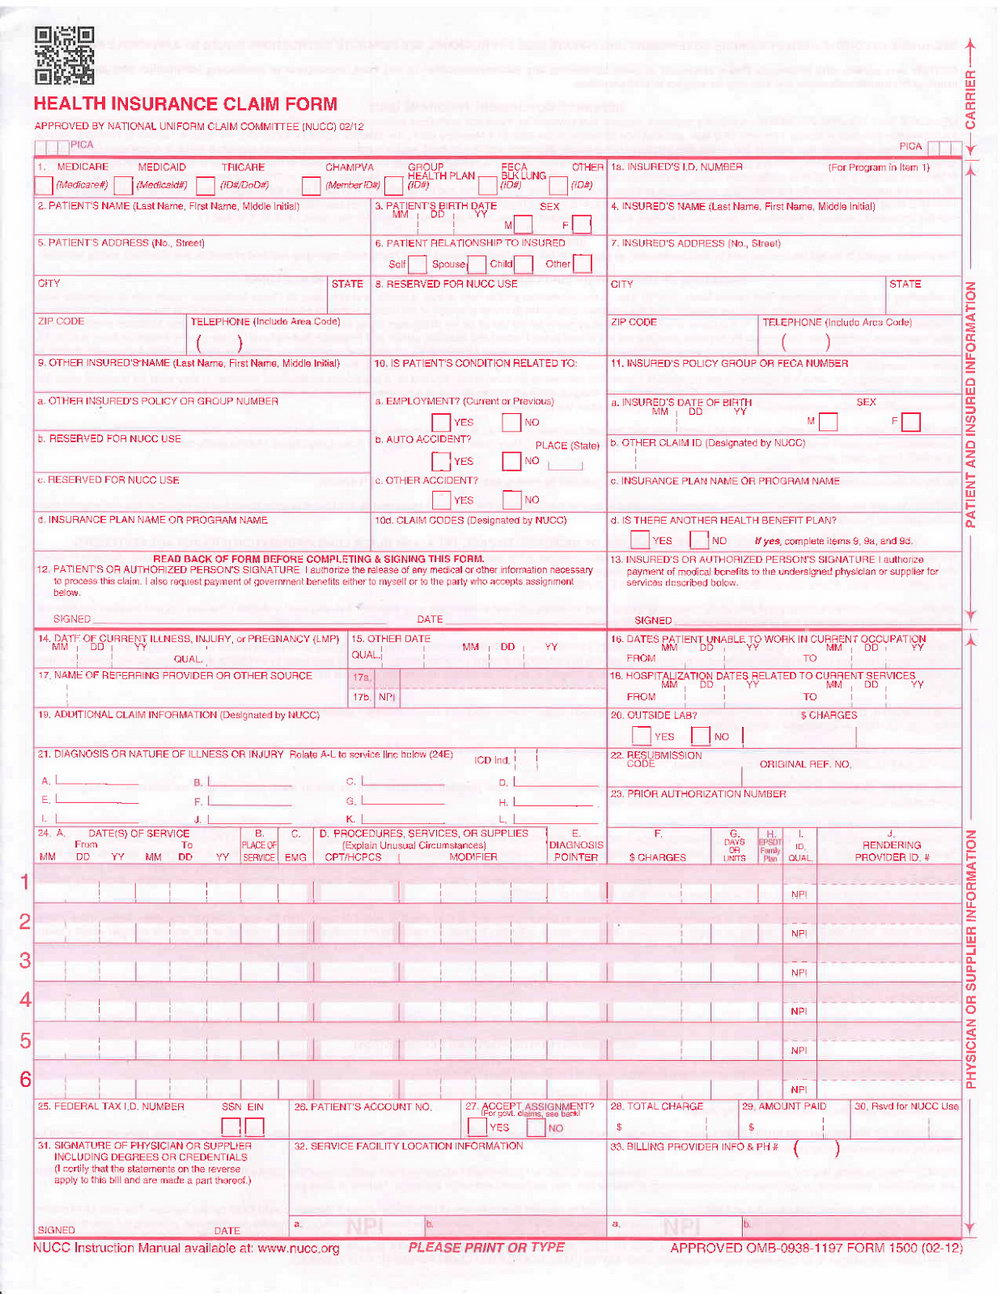 Cms Form 1500 Instructions